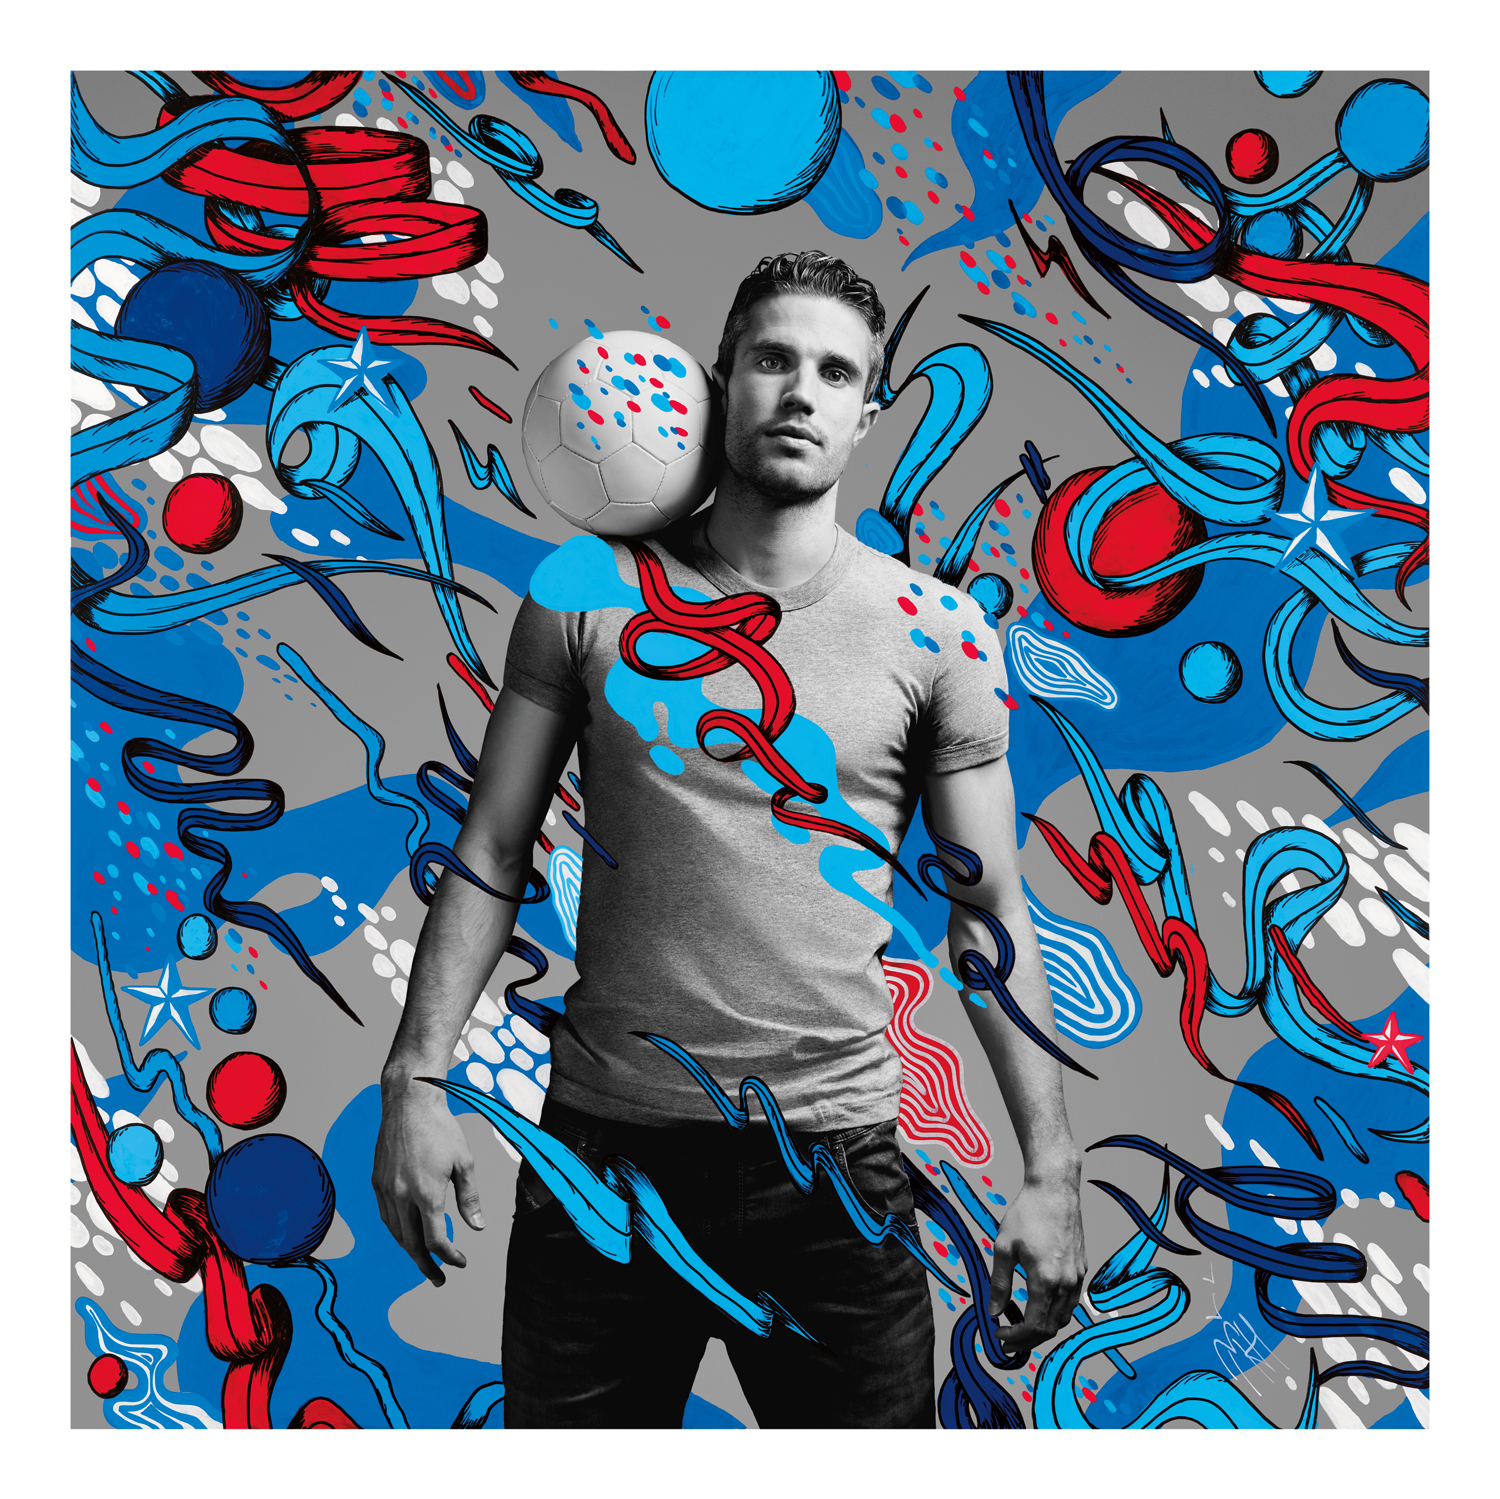 RVP-ARTWORK_HR_1500